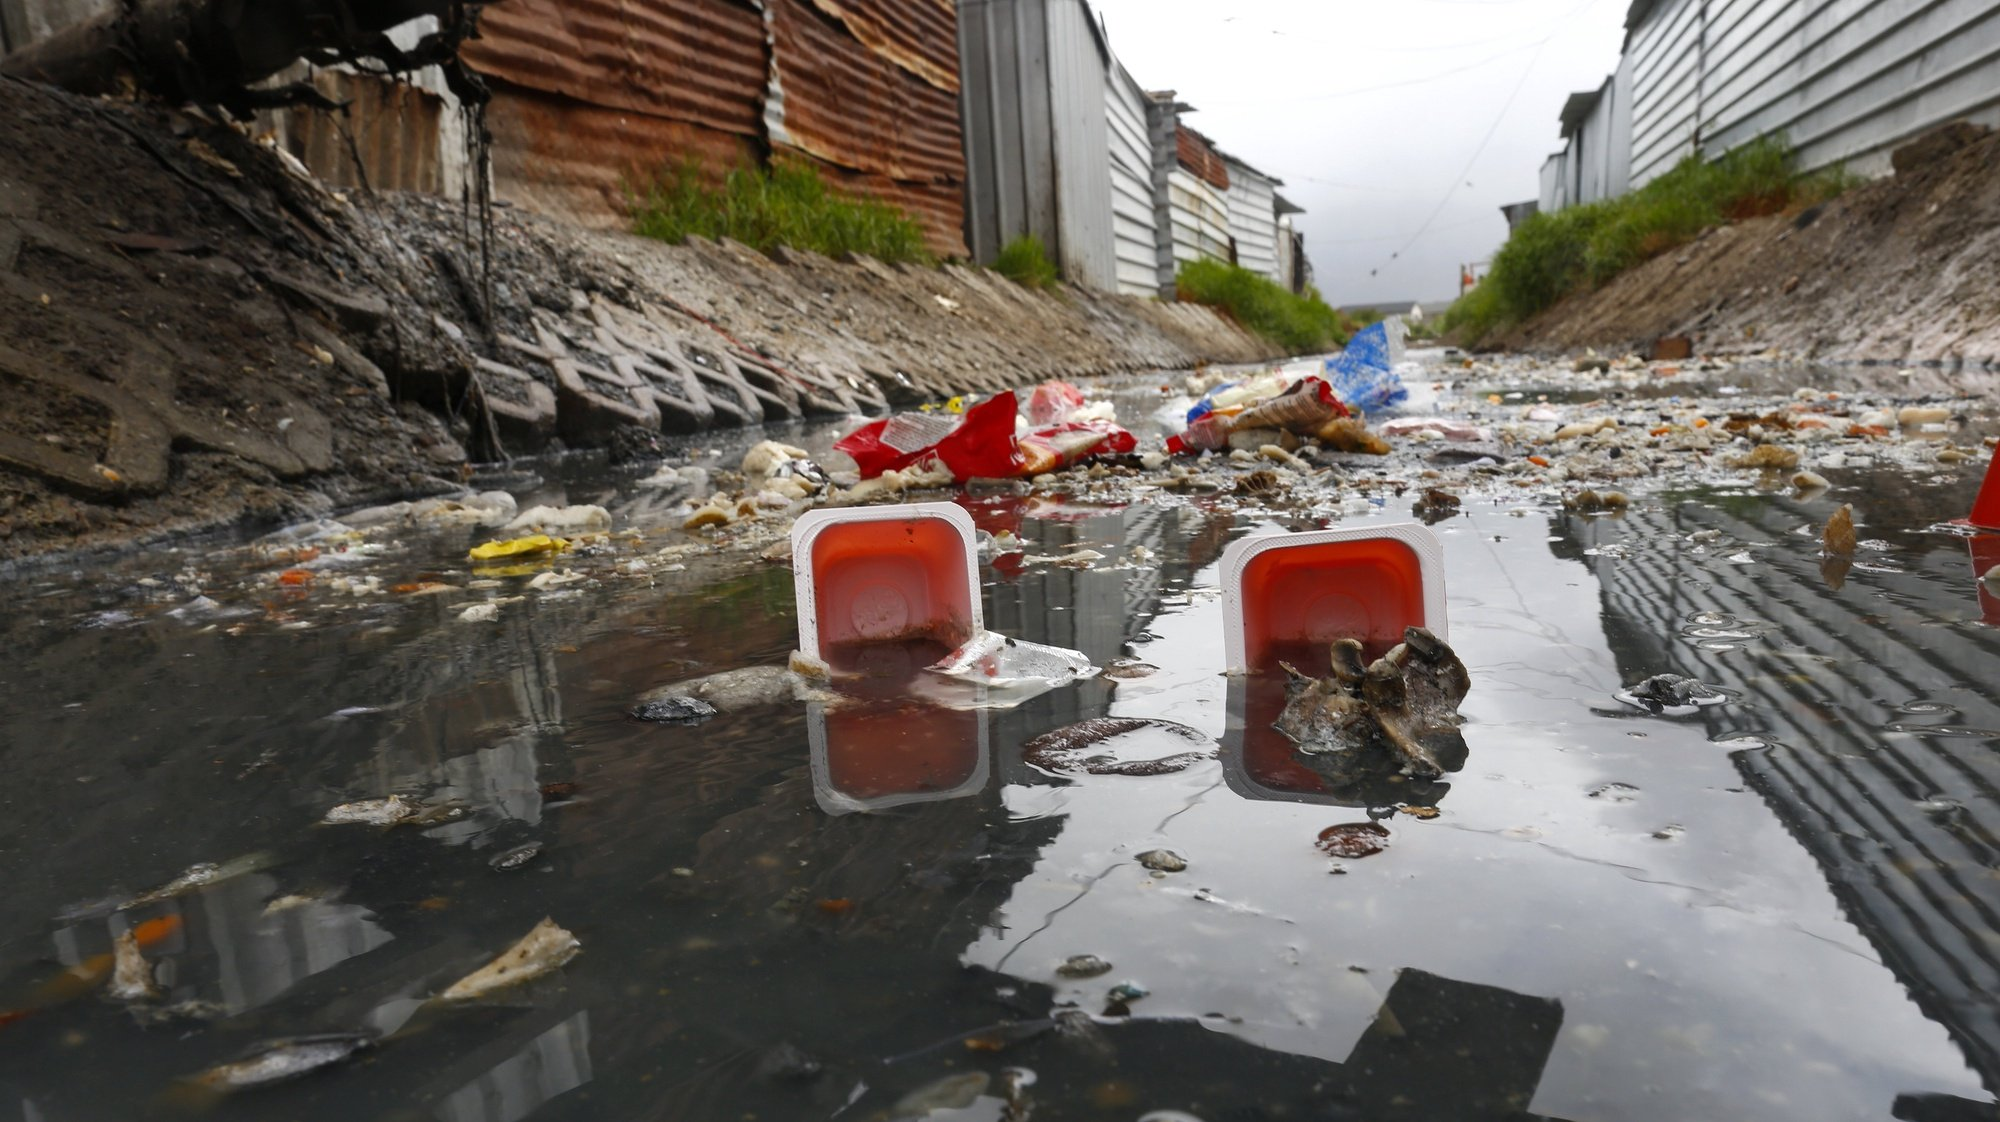 epa06602747 A general view of garbage in a highly polluted river next to shack homes in Masiphumelele, Cape Town, South Africa, 14 March 2018. Rapid urbanization and a national government that has not provided enough infrastructure in high density neighborhoods like Masiphuumelele are two of the major factors environmentalists cite contributing to the polluting of urban rivers. Environmental activists globally observe on 14 March annually the International Day of Action for Rivers with the aim of raising awareness around issues concerning the world's water ways.  EPA/NIC BOTHMA